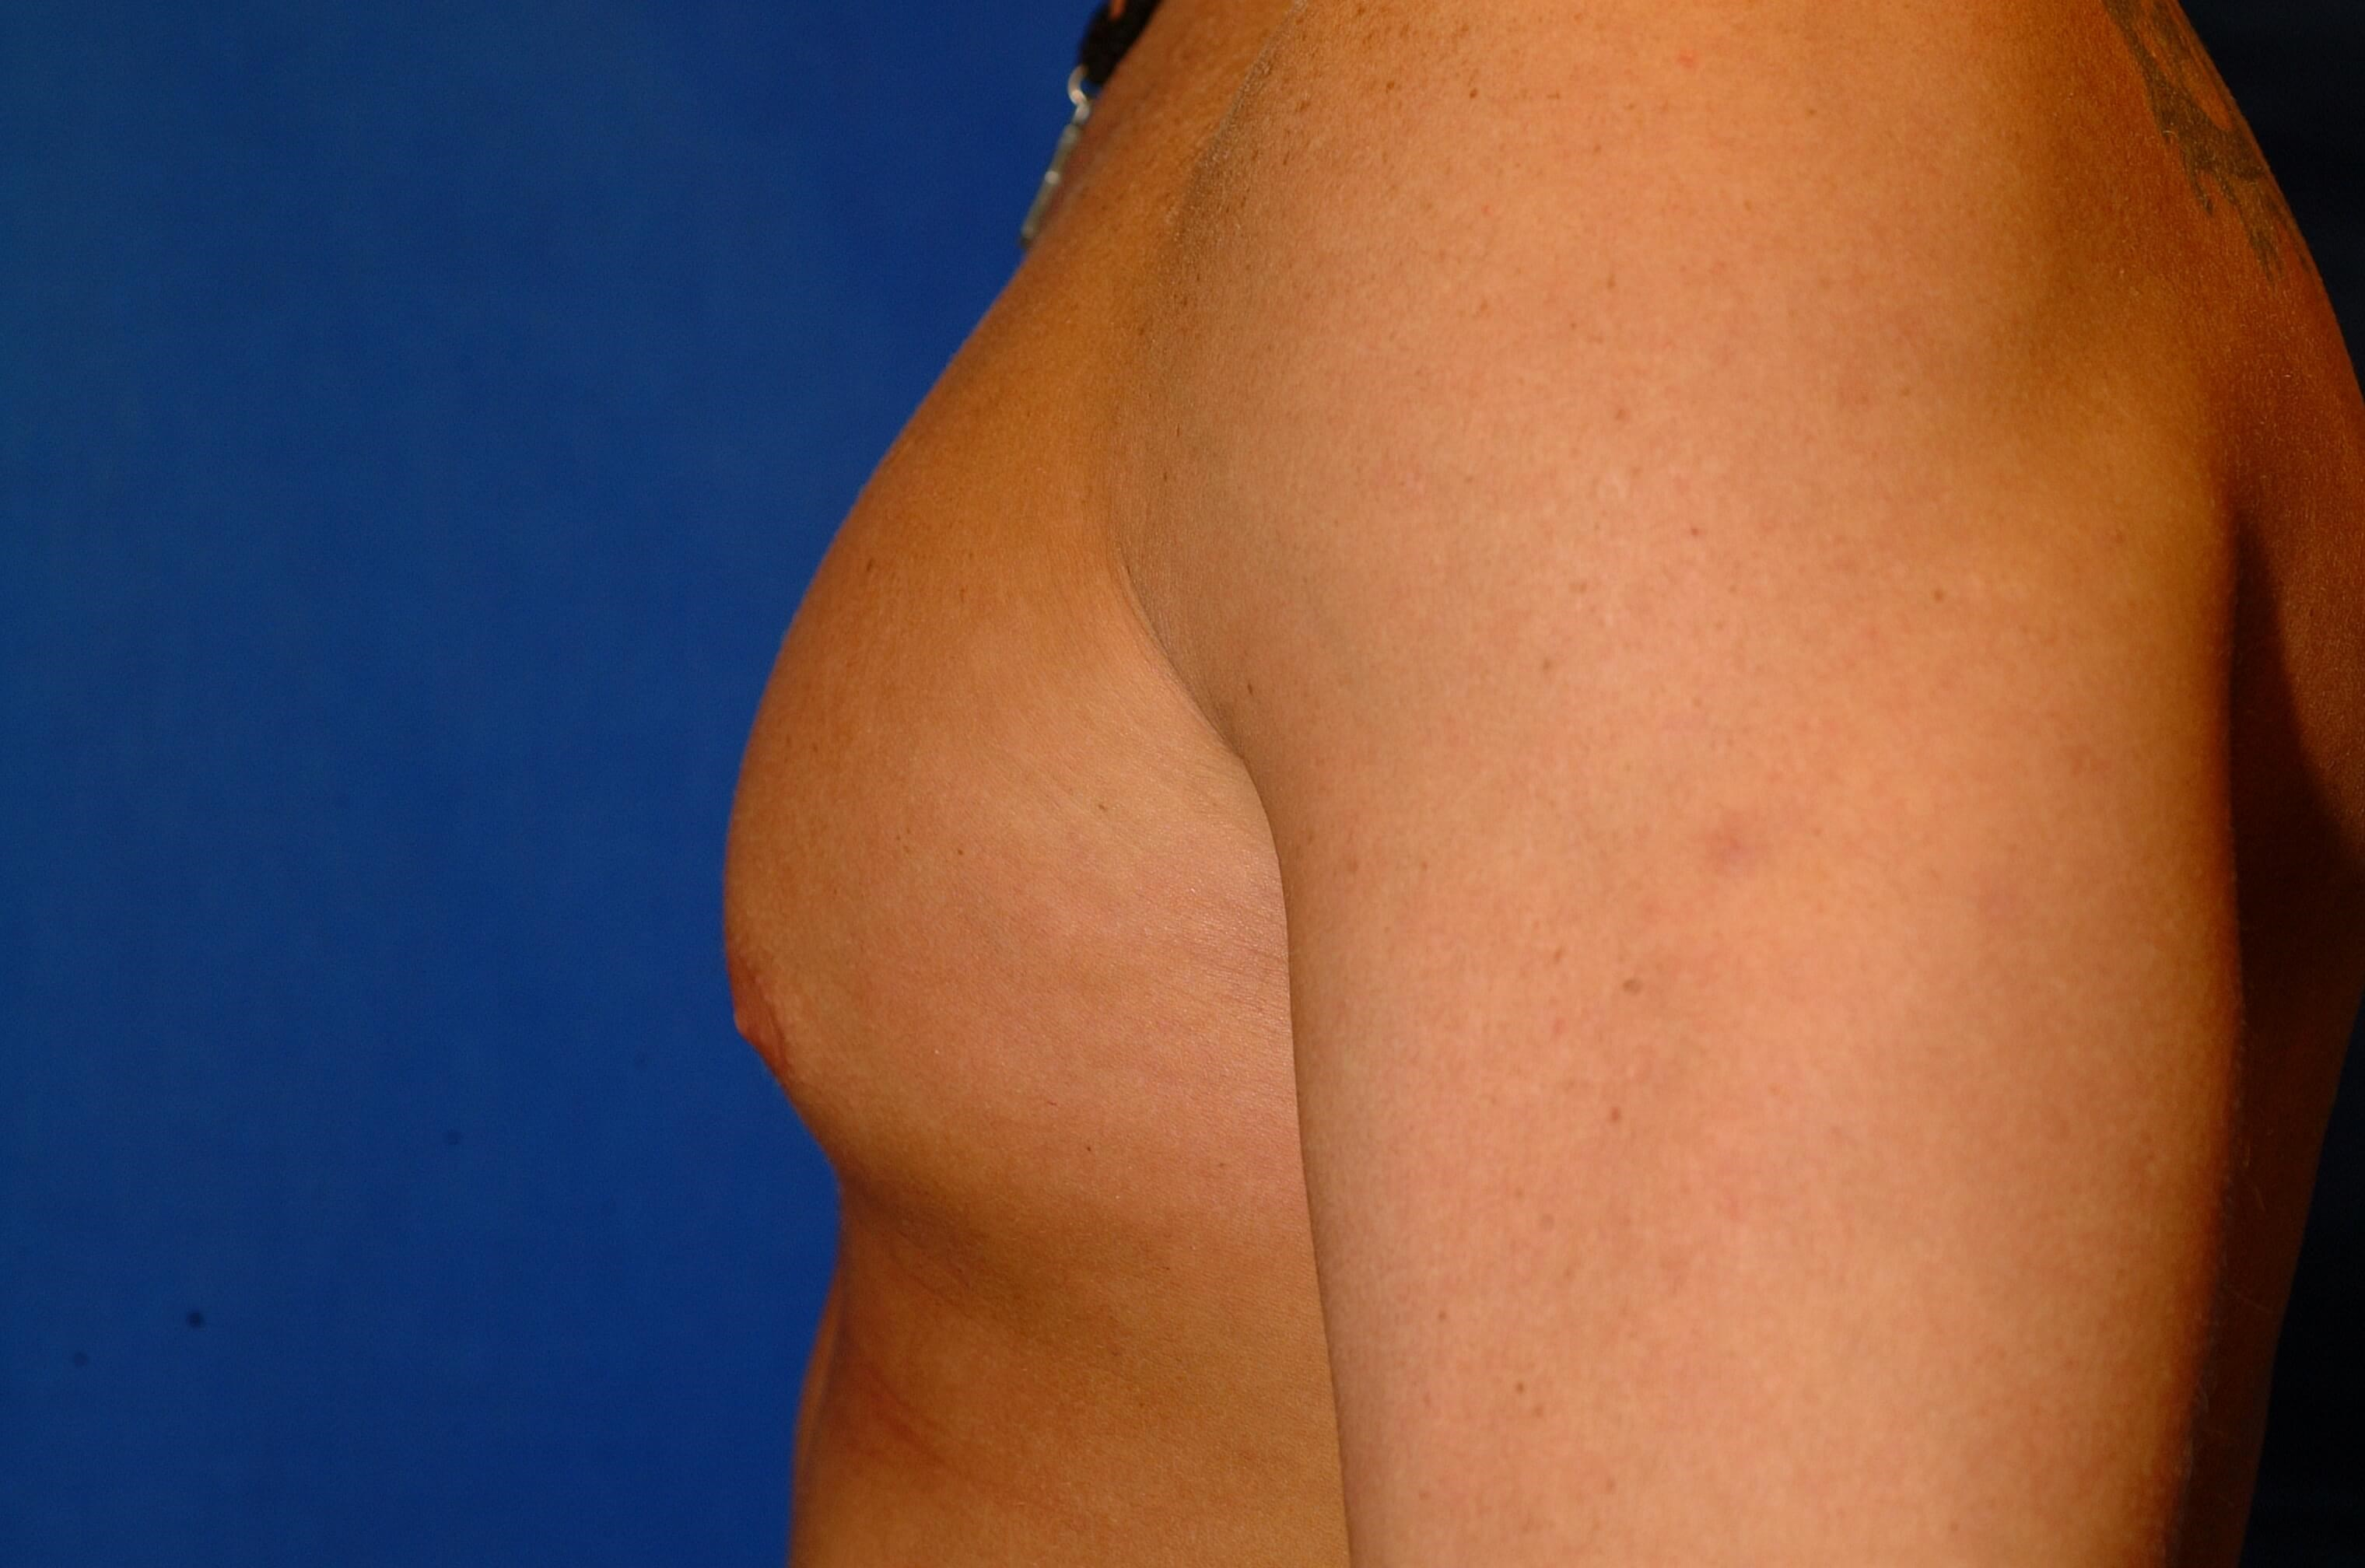 Newport Beach Pectoral Implant Side View After